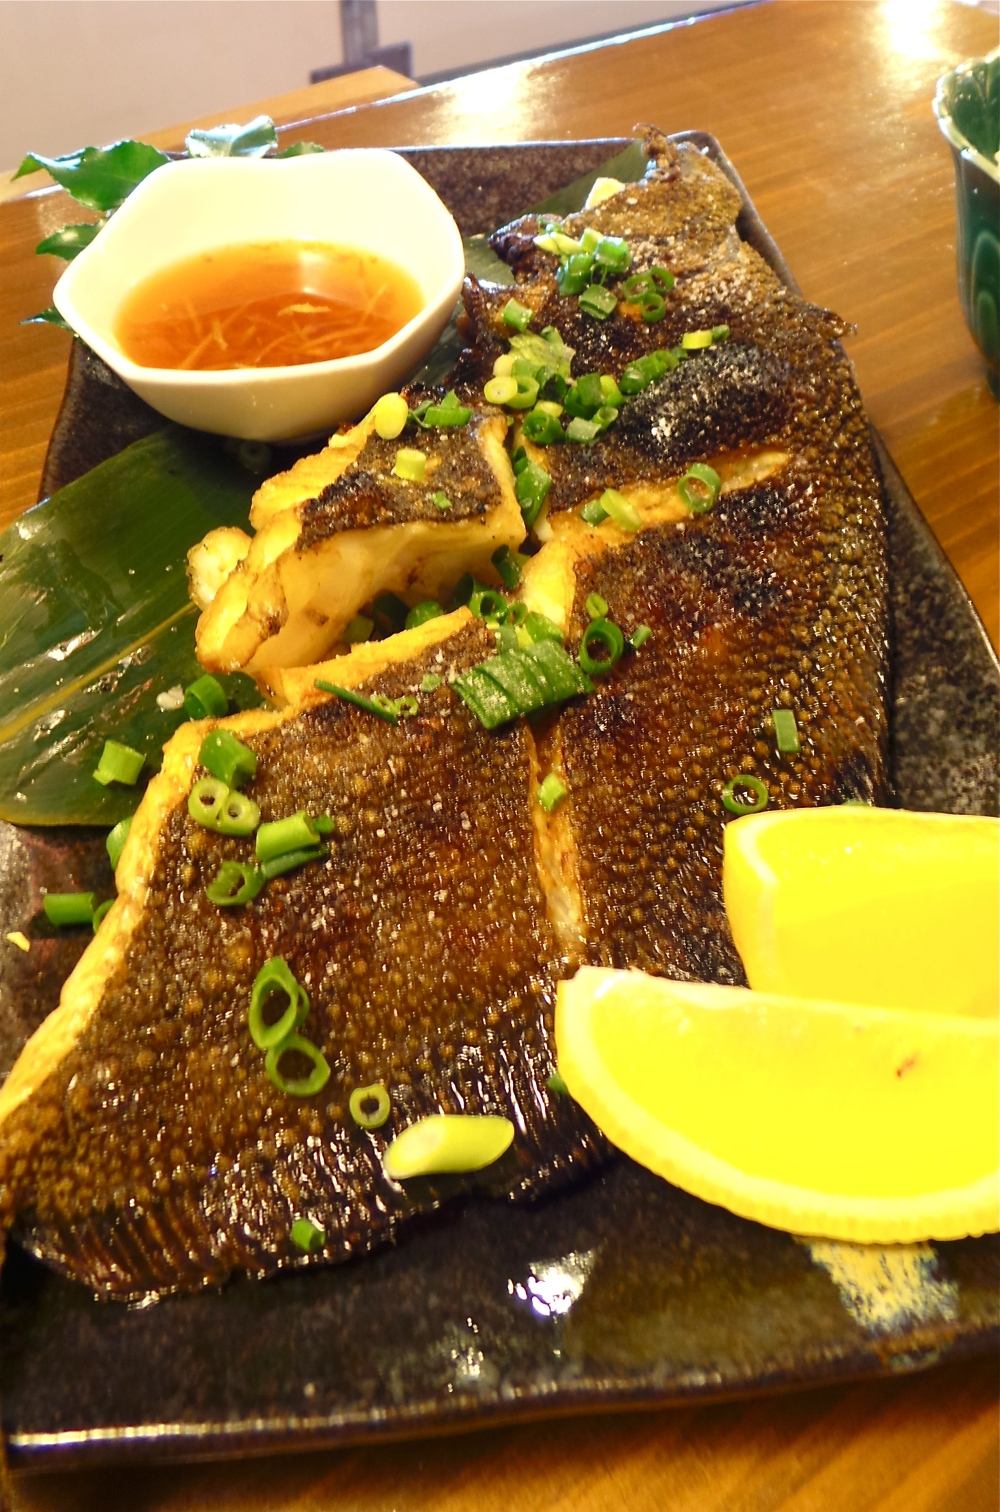 A delicious fried sole fish